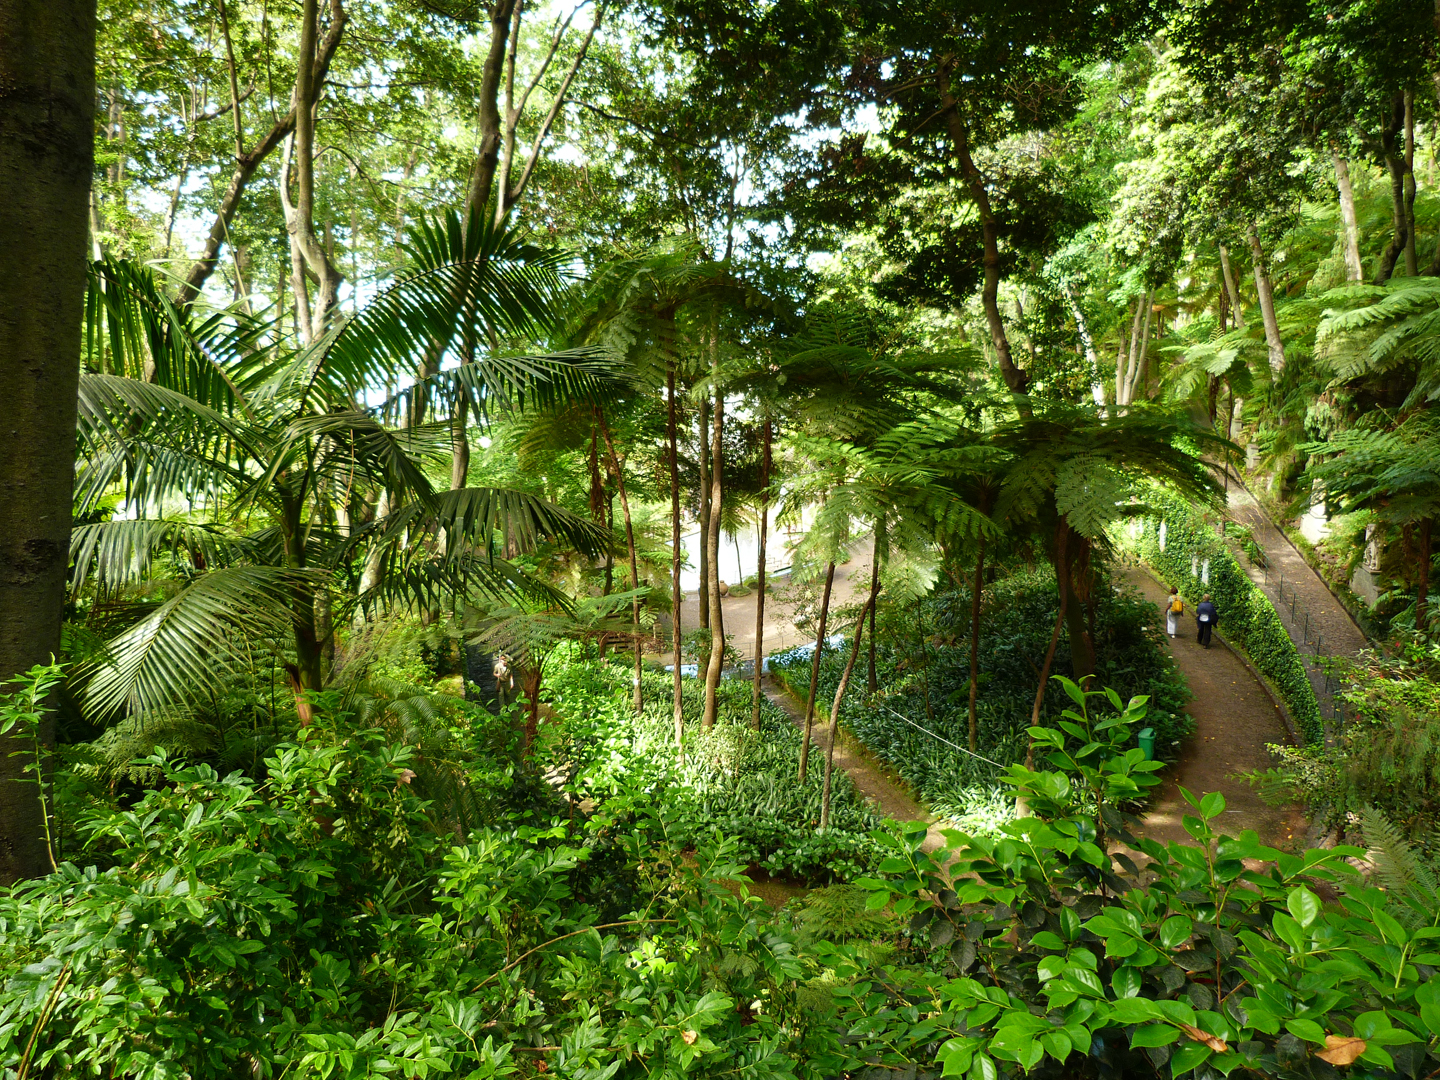 3rd – Tropical Trees in Madiera - Mike Pritchard